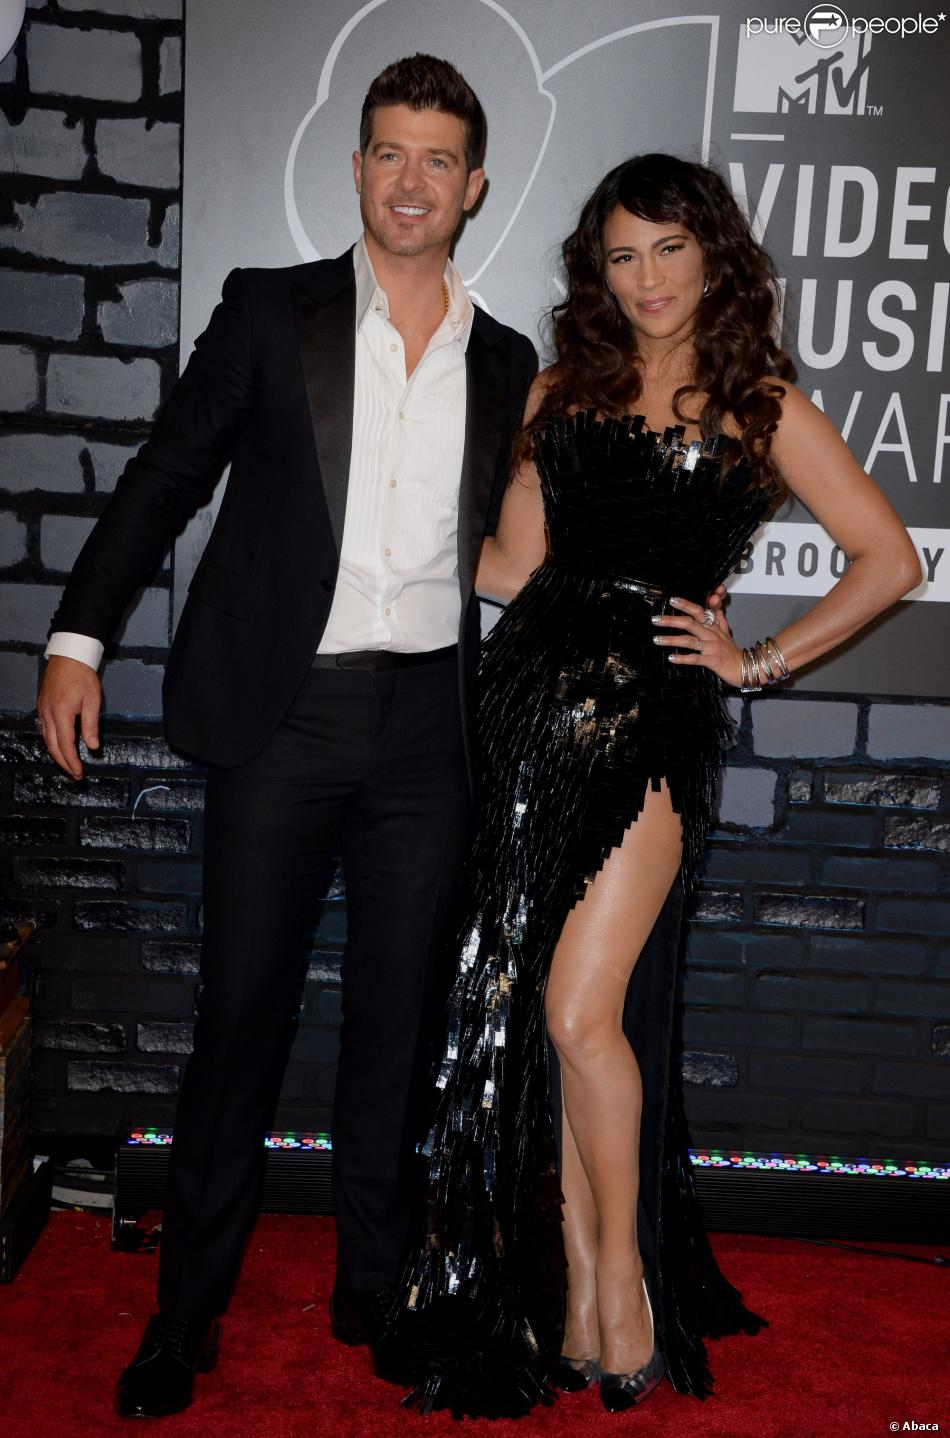 Robin Thicke et Paula Patton sur le red carpet des MTV Video Music Awards au Barclays Center, le 25 août 2013.